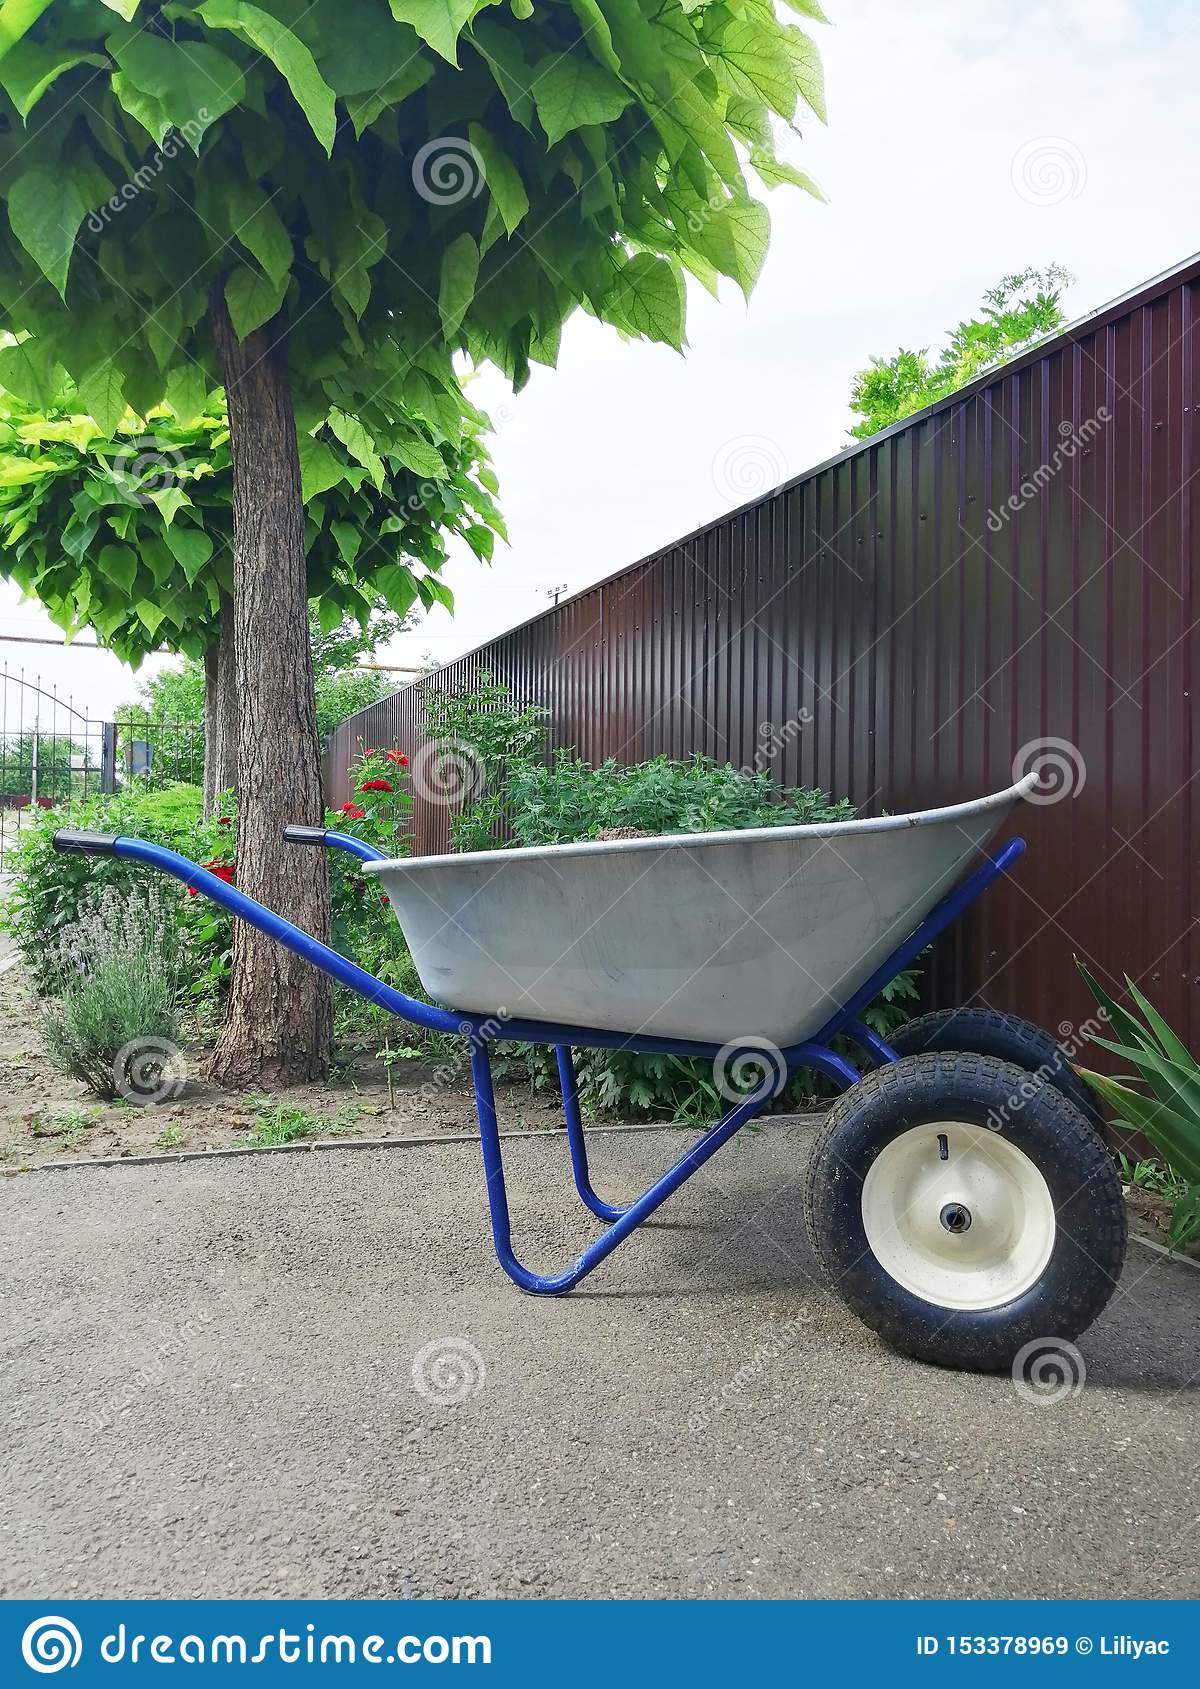 Garden or steel construction on two wheels for the carriage of cargo